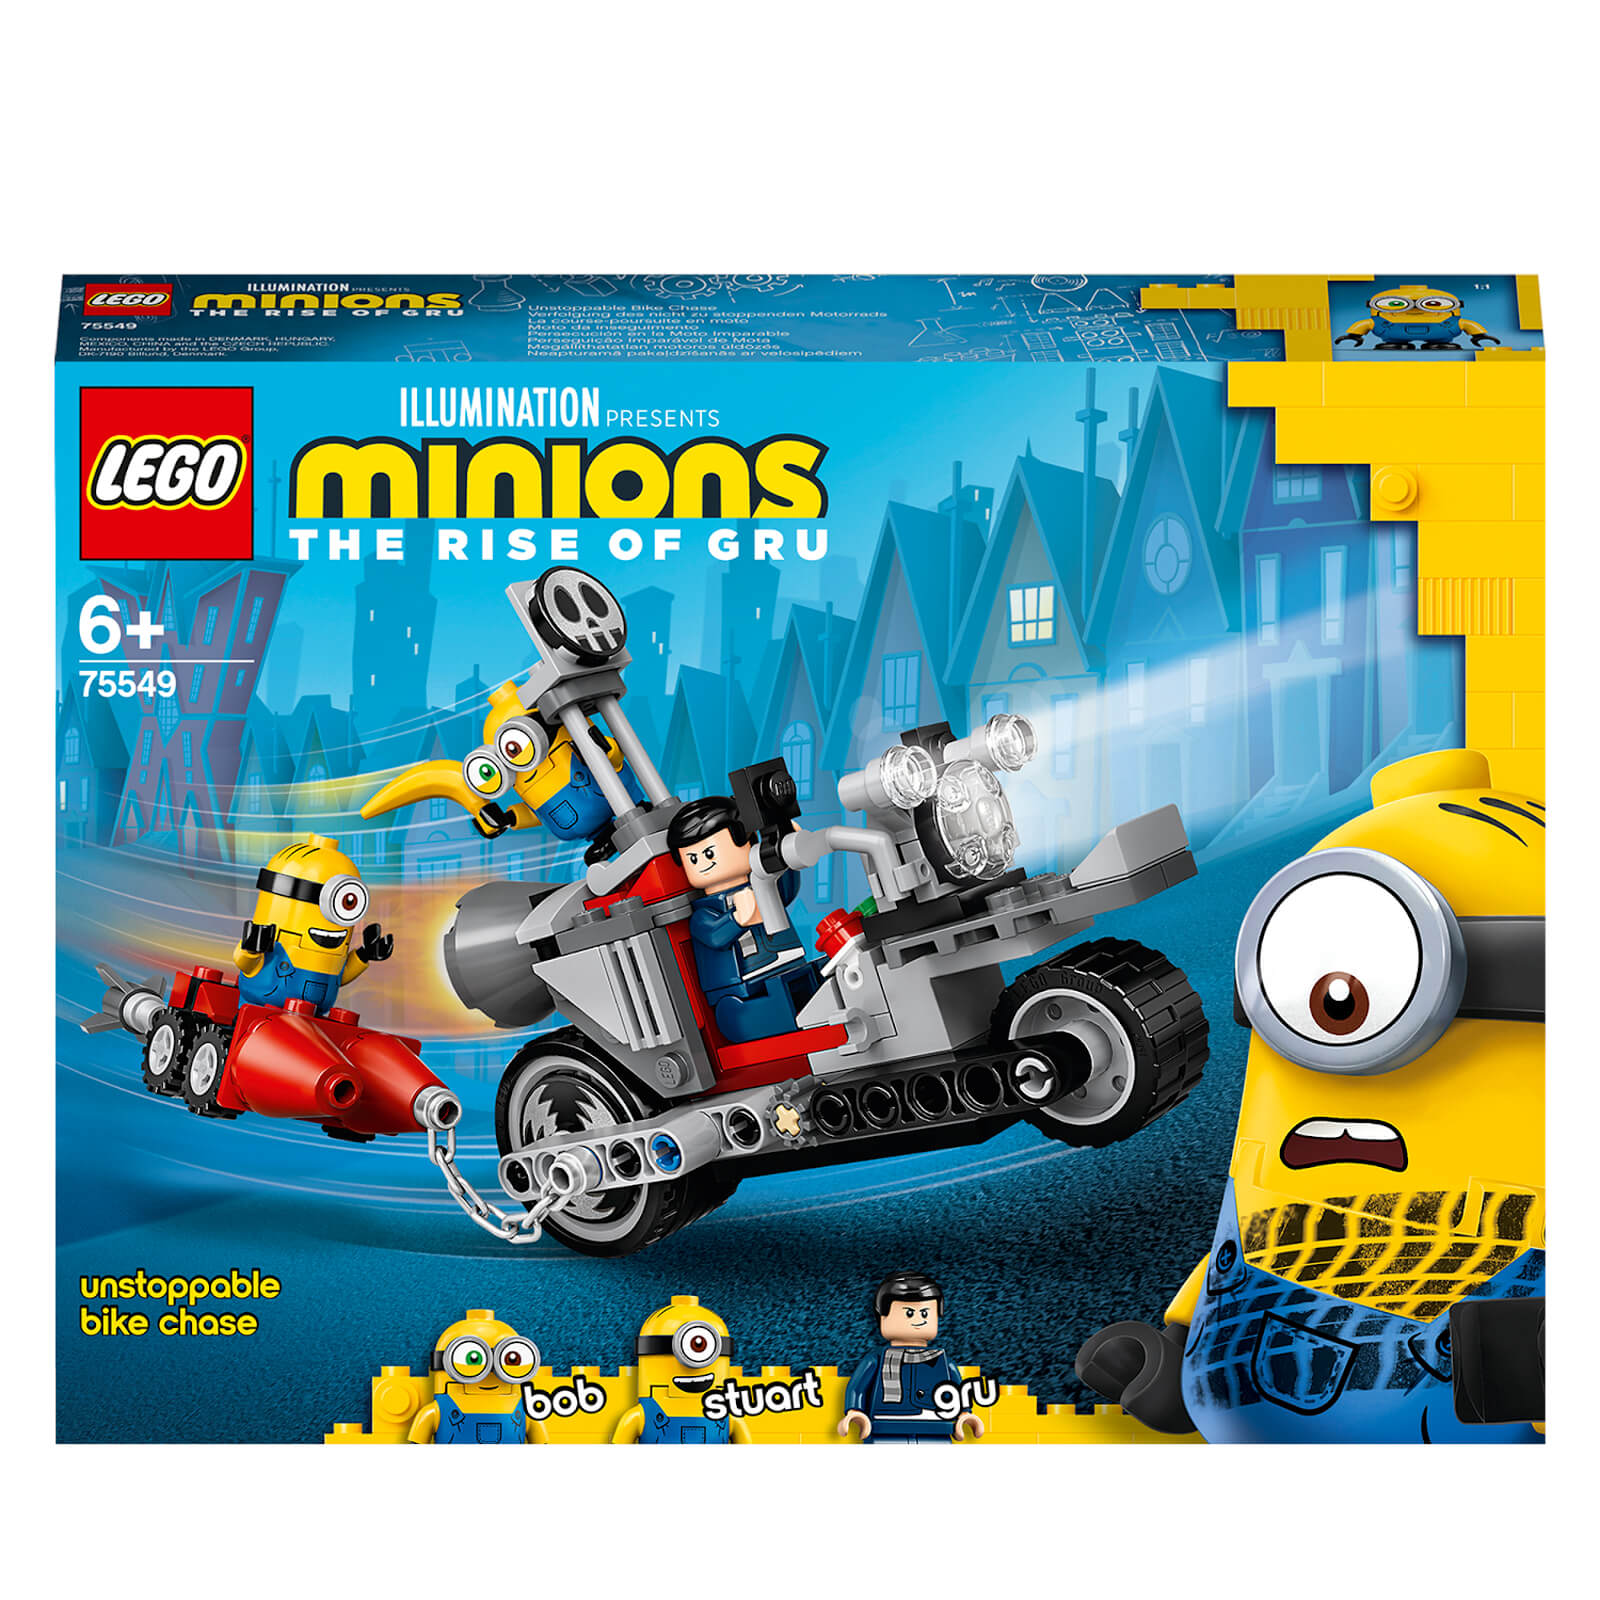 Image of LEGO Minions: Unstoppable Bike Chase & Skate Toy (75549)